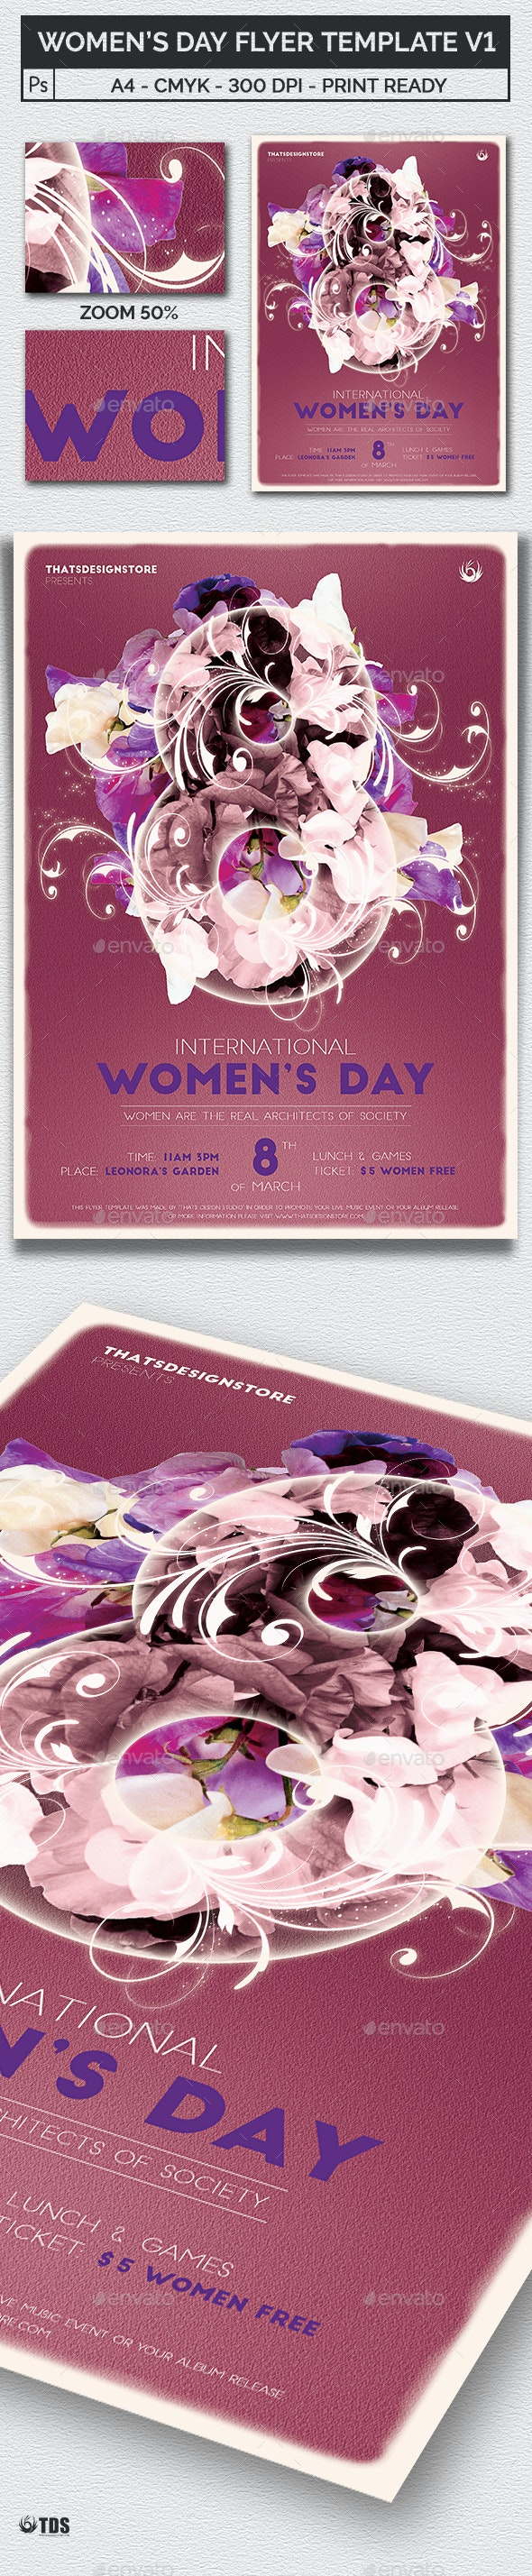 Womens Day Flyer Template V1 - Holidays Events